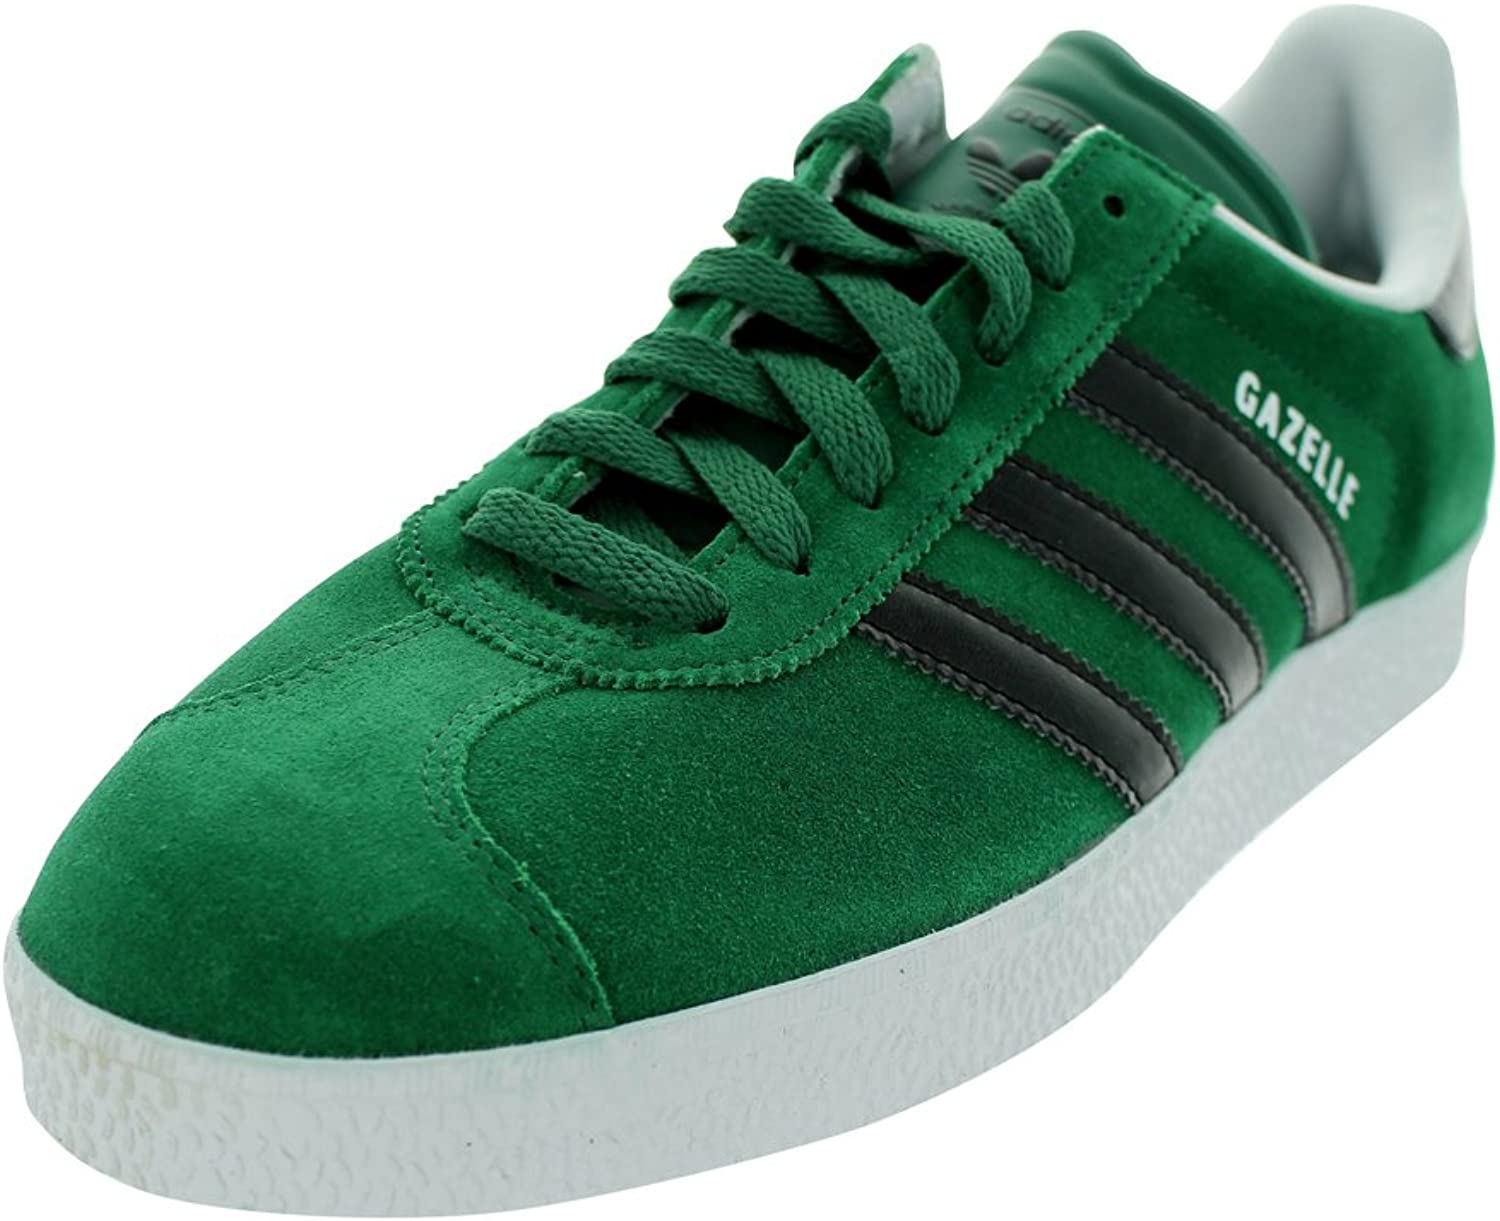 New Mens Gents Royal bluee Adidas Original Gazelle Fashion Trainers. - Royal bluee White - UK SIZE 8.5